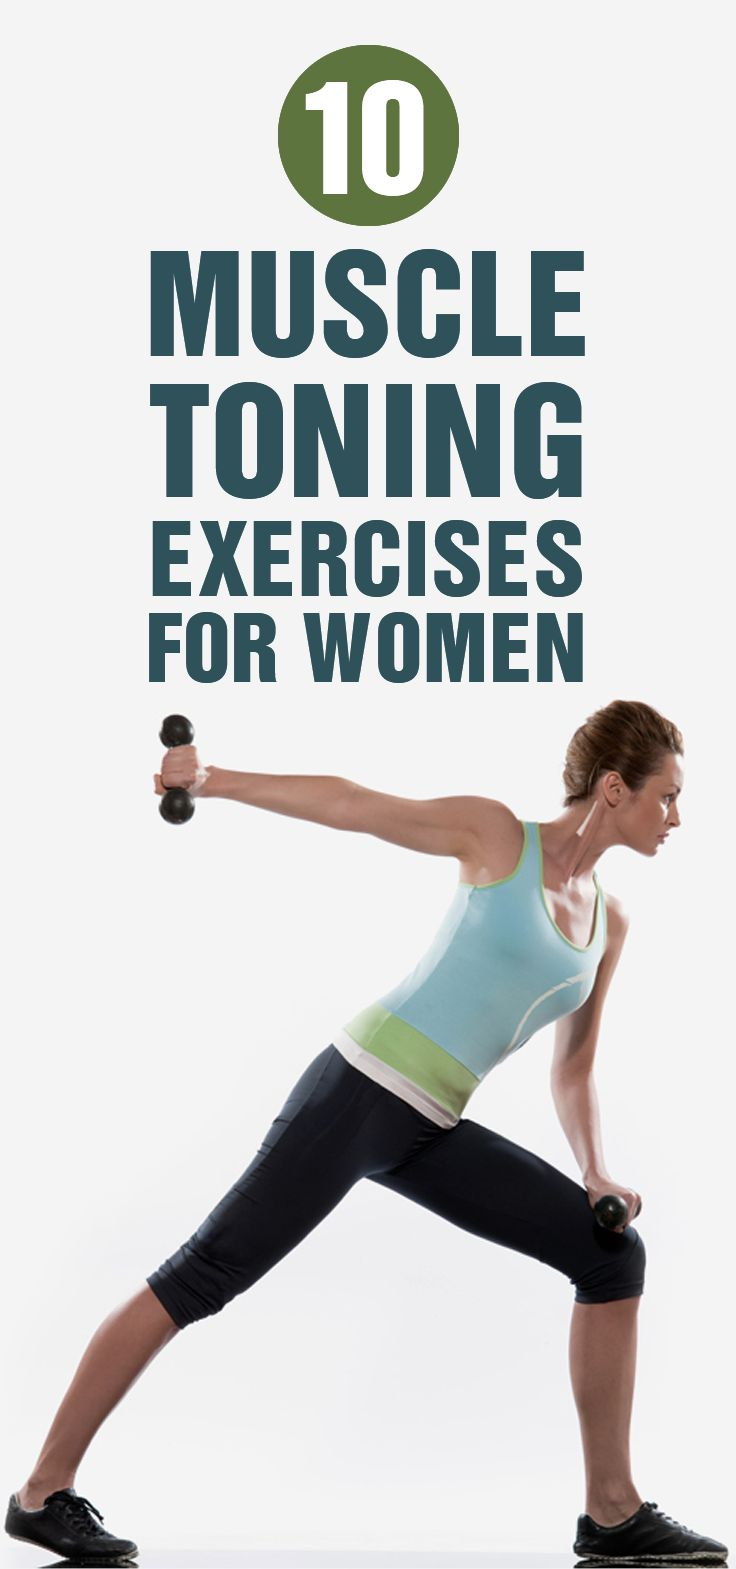 10 Muscle Toning Exercises For Women